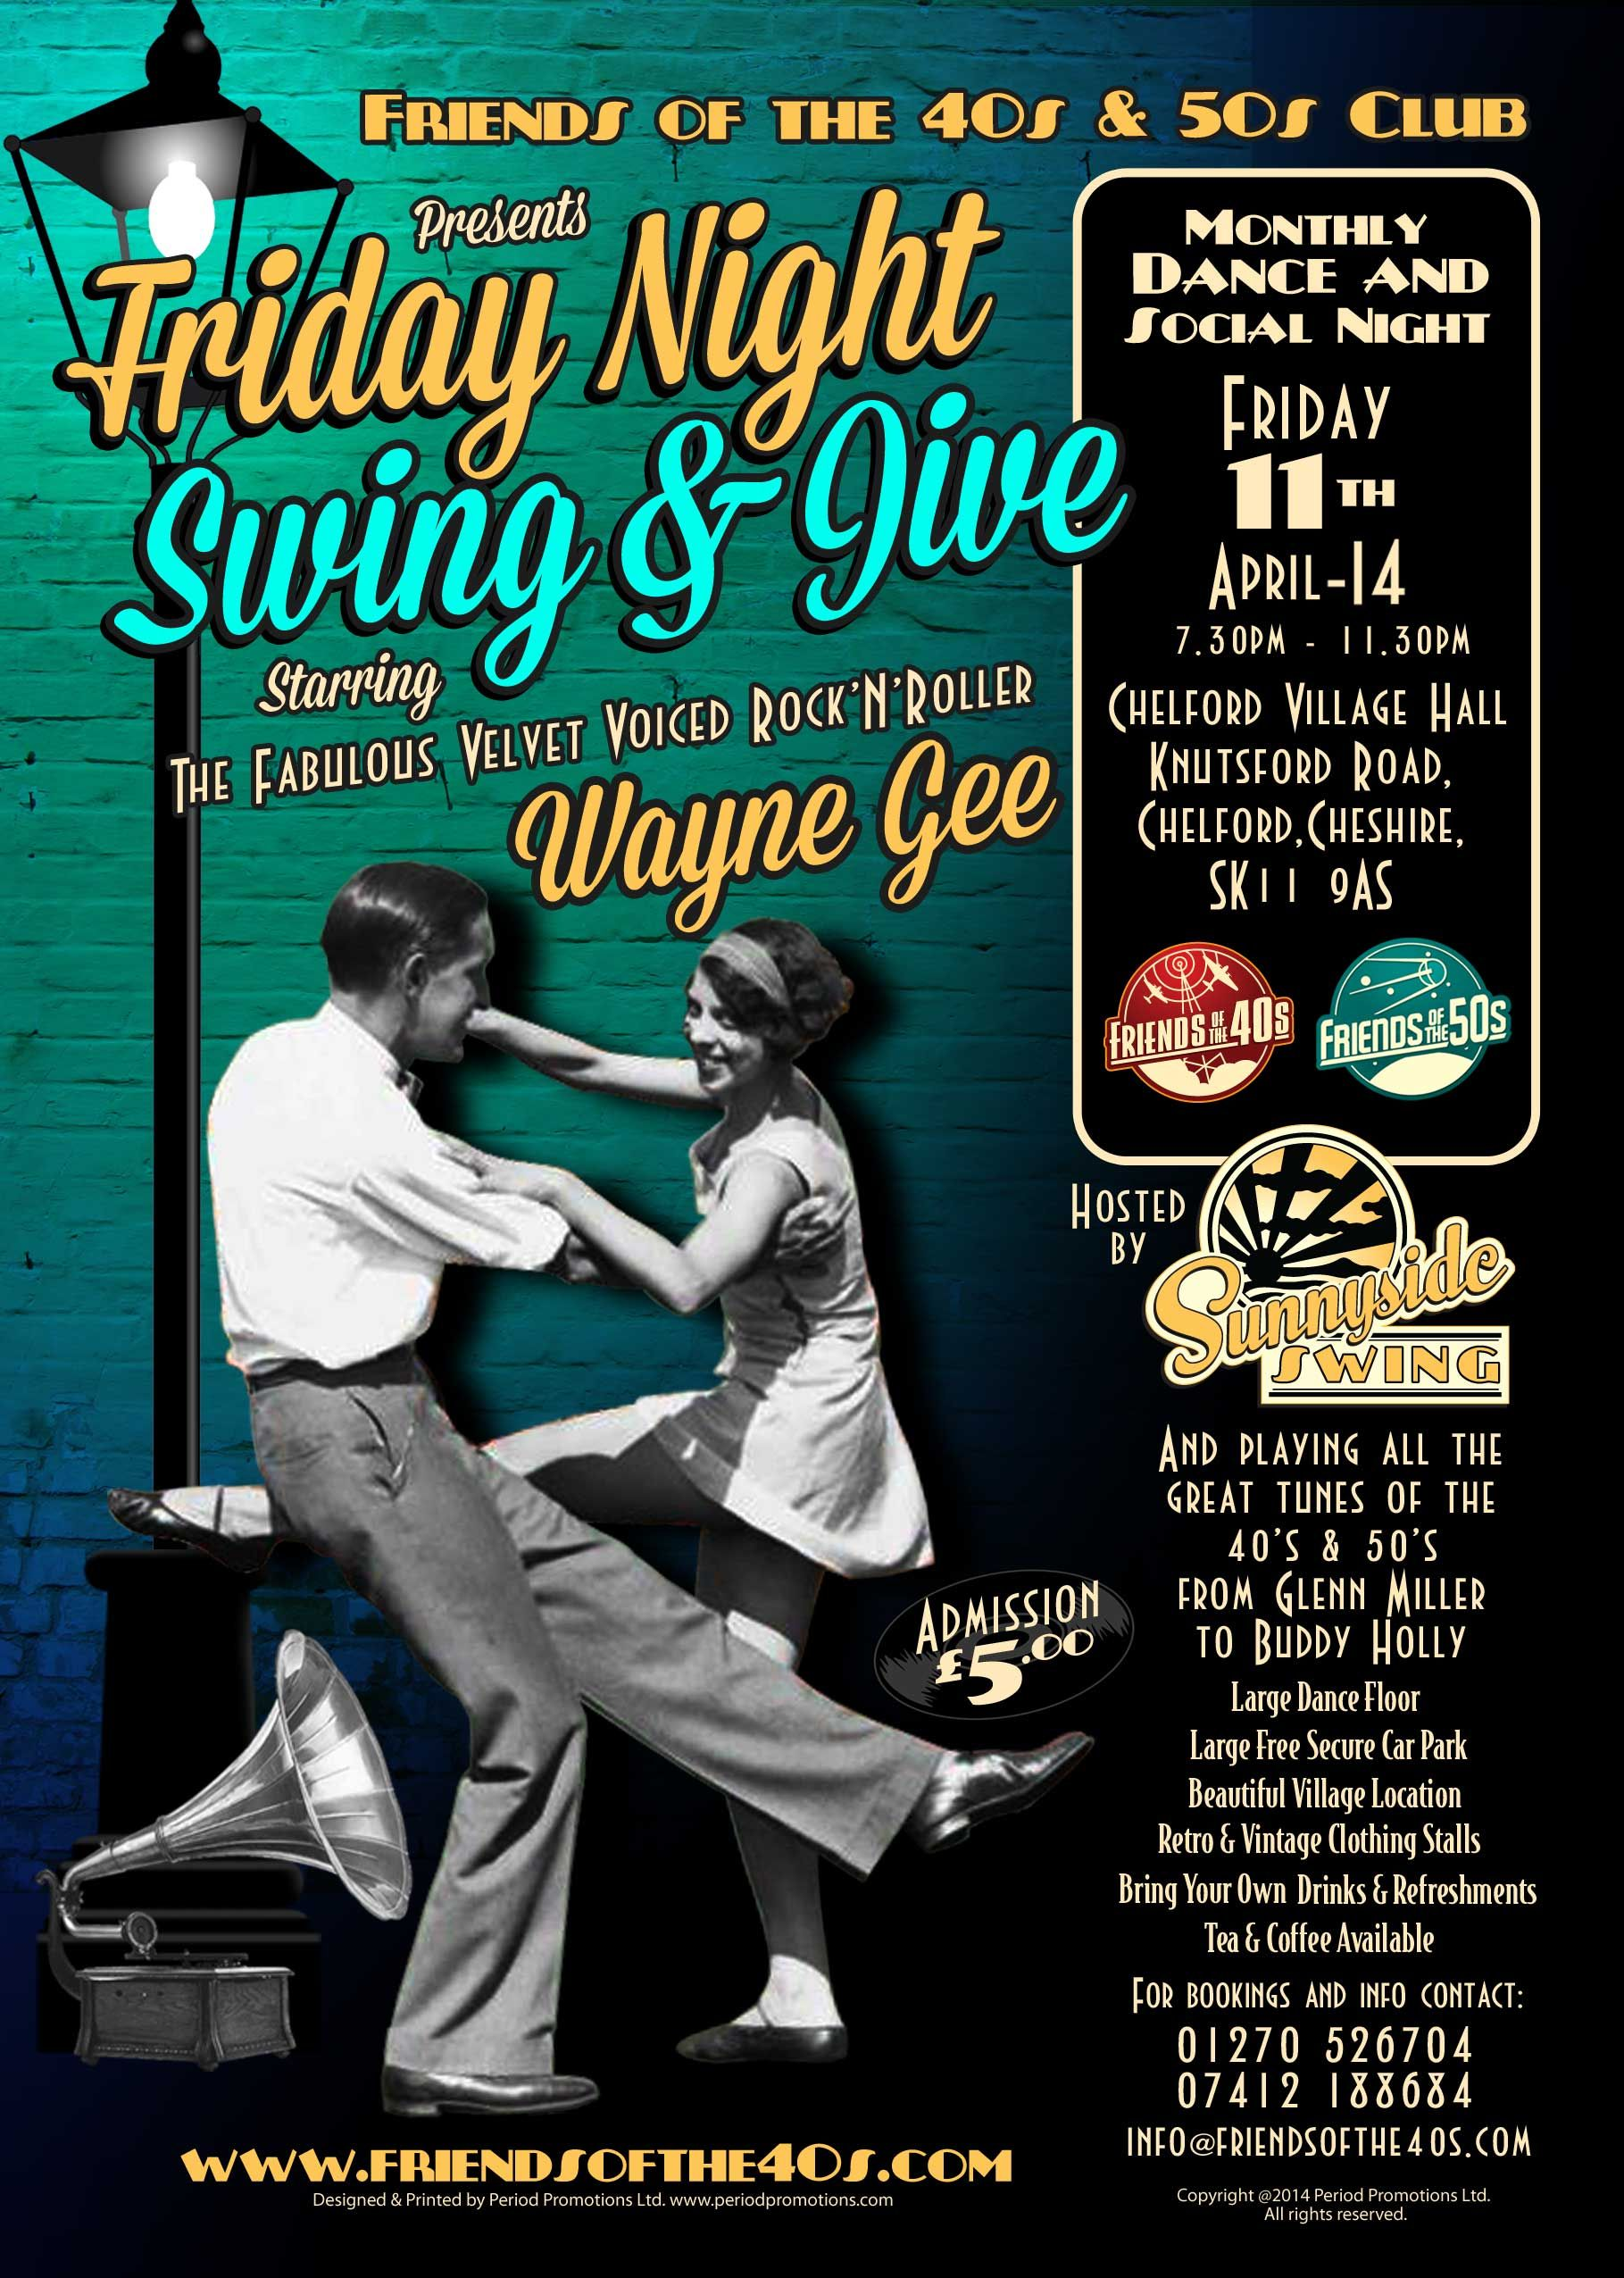 Friday Night Swing & Jive, Promotional Poster for a